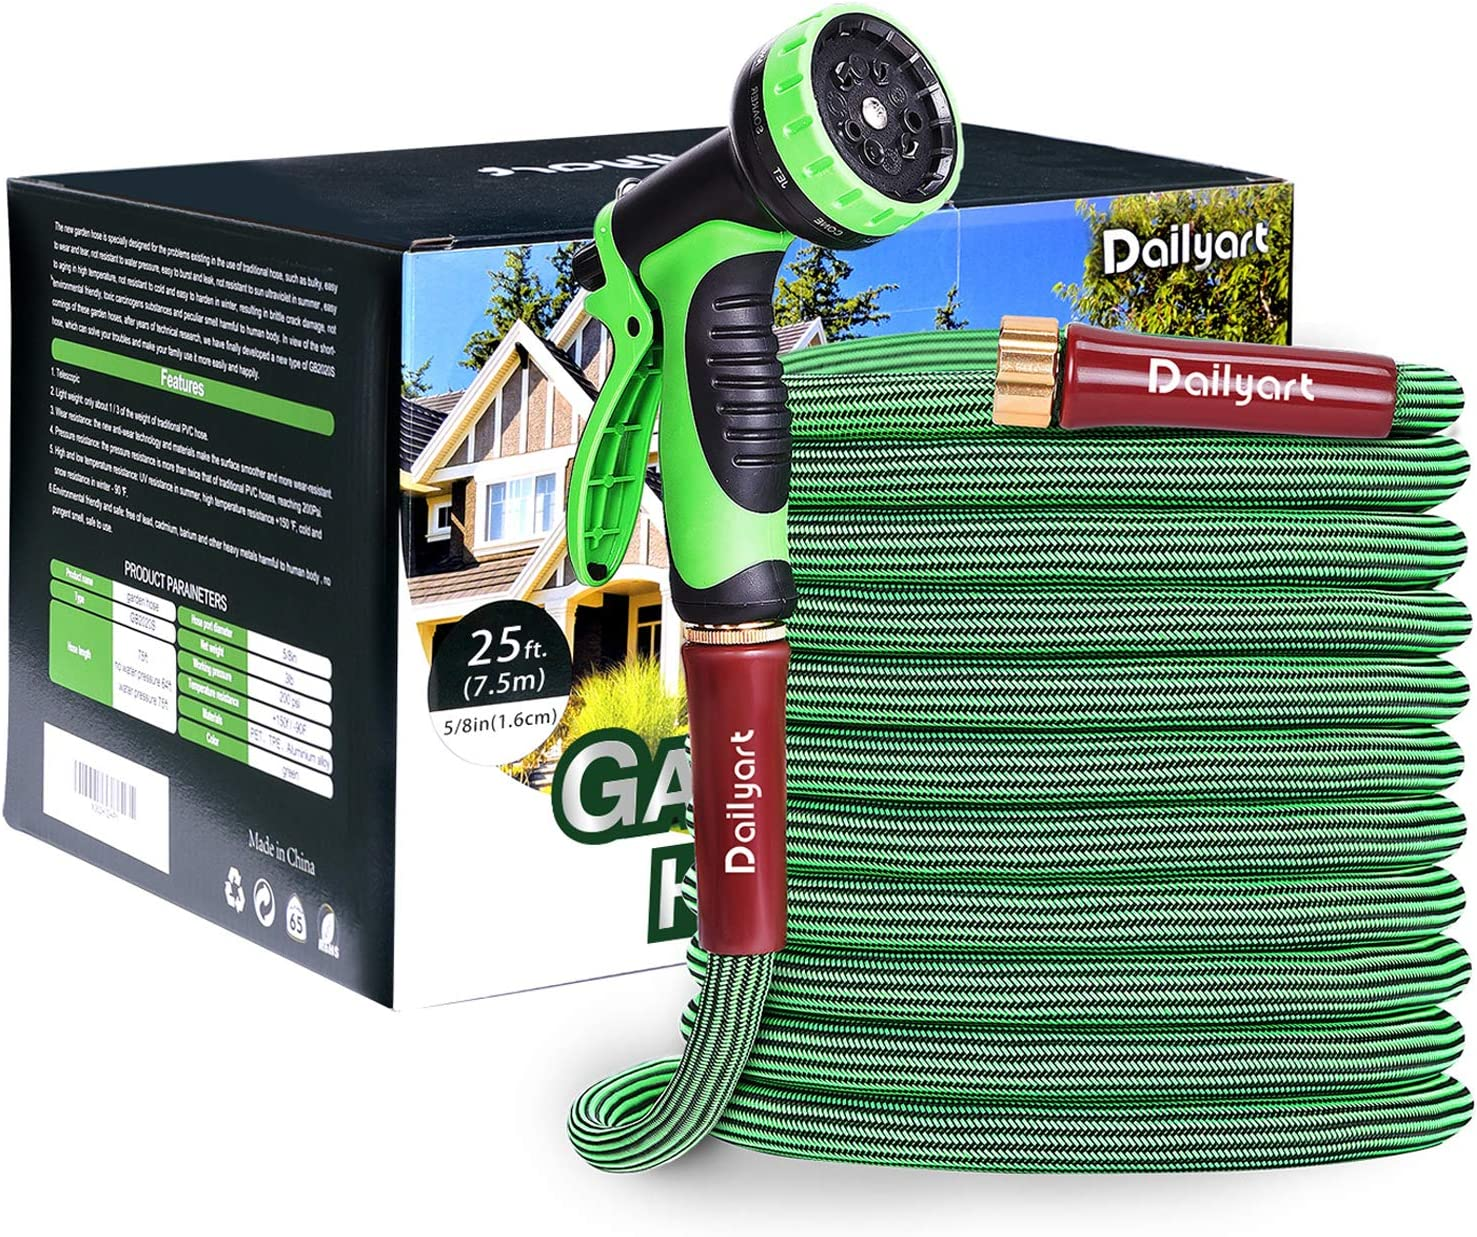 Dailyart Garden Hose, 50ft Expandable Flexible Water Hose with 10 Function Spray Nozzle,2020 New Extra Strength Light Fabric,Durable at +150°F/-90°F,Kink Free & Rot, Crack, Leak Resistant Water Hose